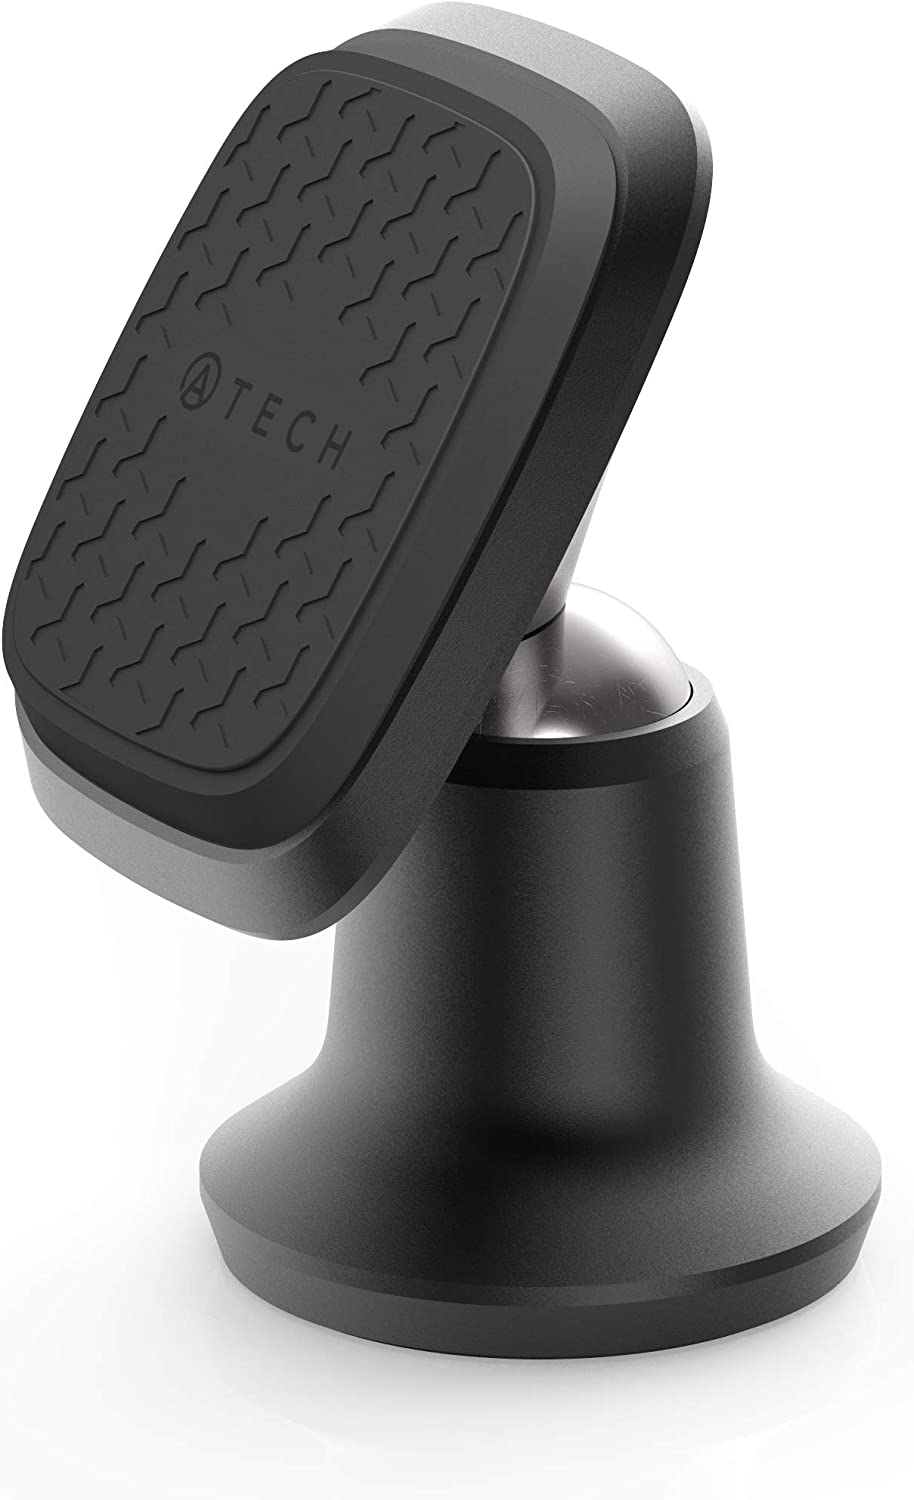 ATECH Magnetic Car Mount Dashboard Phone Holder Universal All Smartphones Small Tablet with Cases Small-Sized Kitchen Bathroom Car Black Bedside